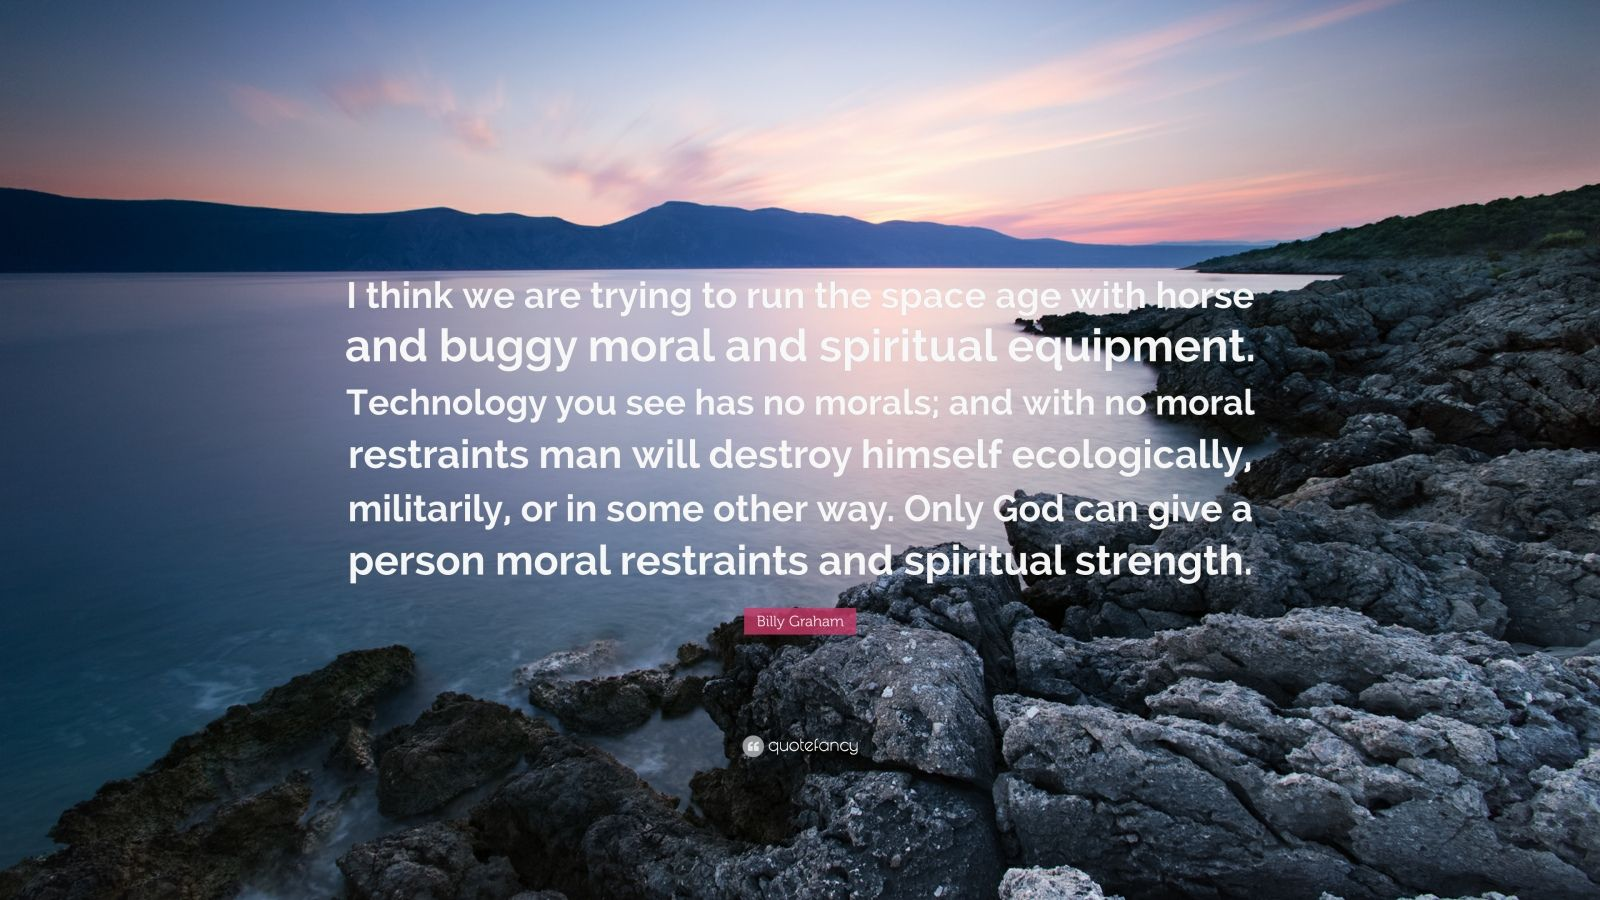 """Billy Graham Quote: """"I think we are trying to run the space age with horse and buggy moral and spiritual equipment. Technology you see has no morals; and with no moral restraints man will destroy himself ecologically, militarily, or in some other way. Only God can give a person moral restraints and spiritual strength."""""""